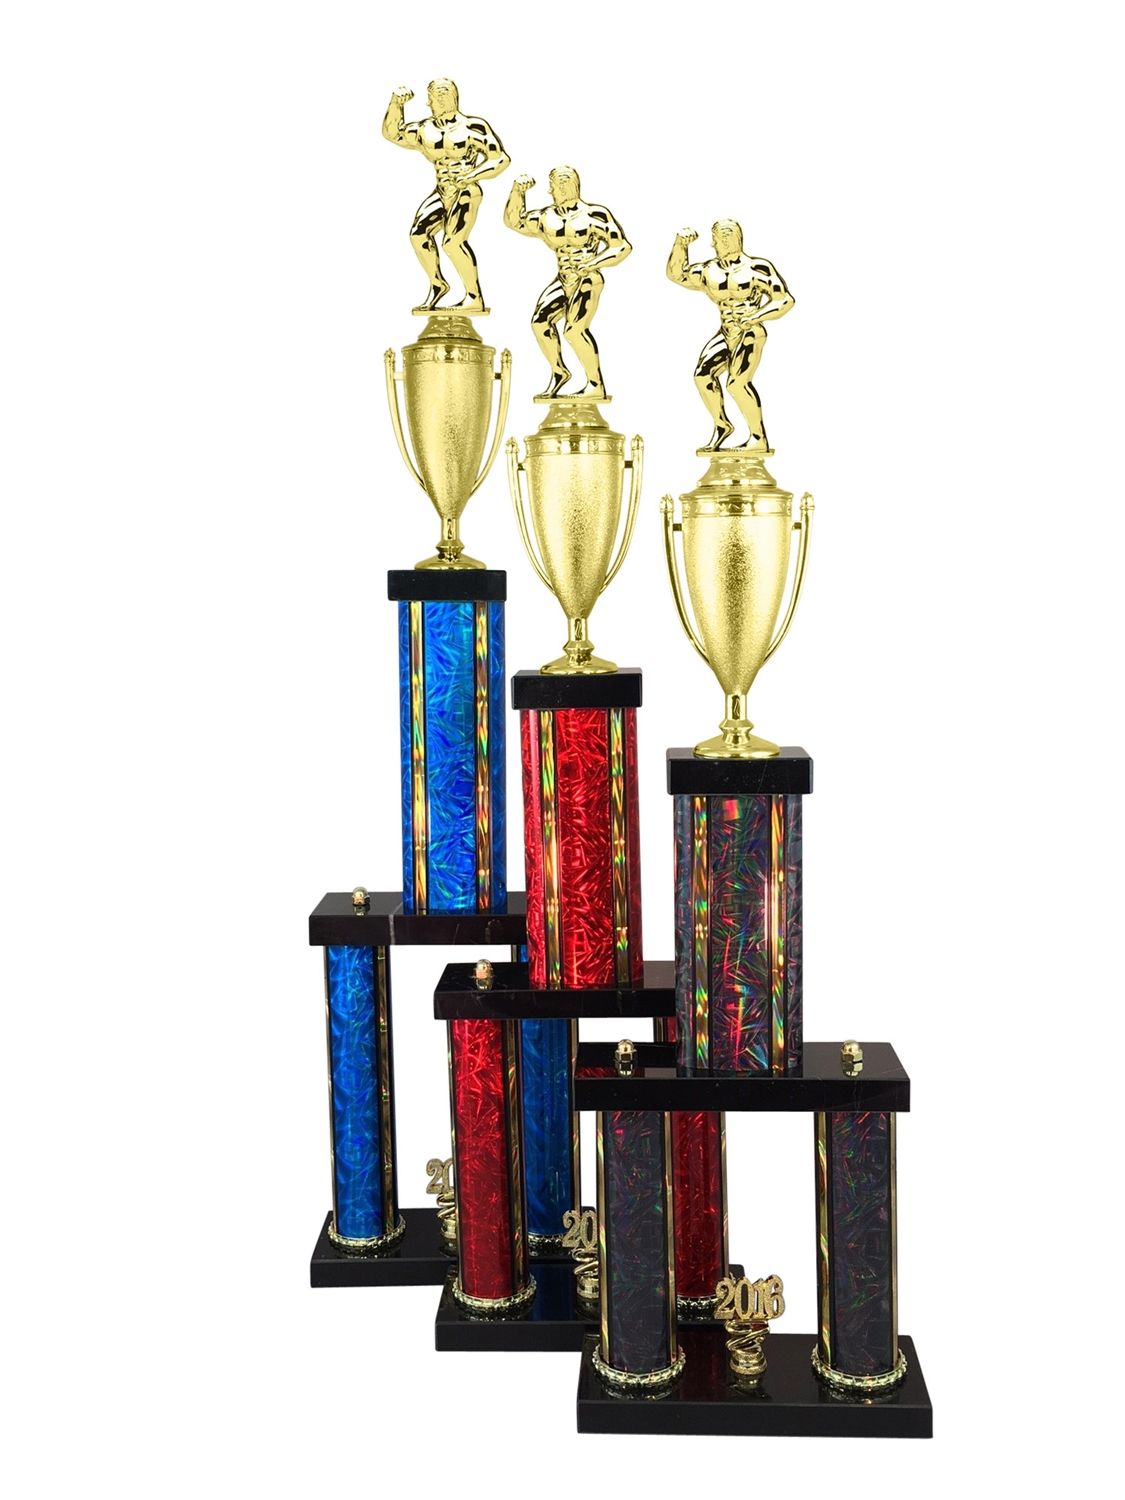 Male Body Building Trophy Available in 11 Color & 6 Size Options